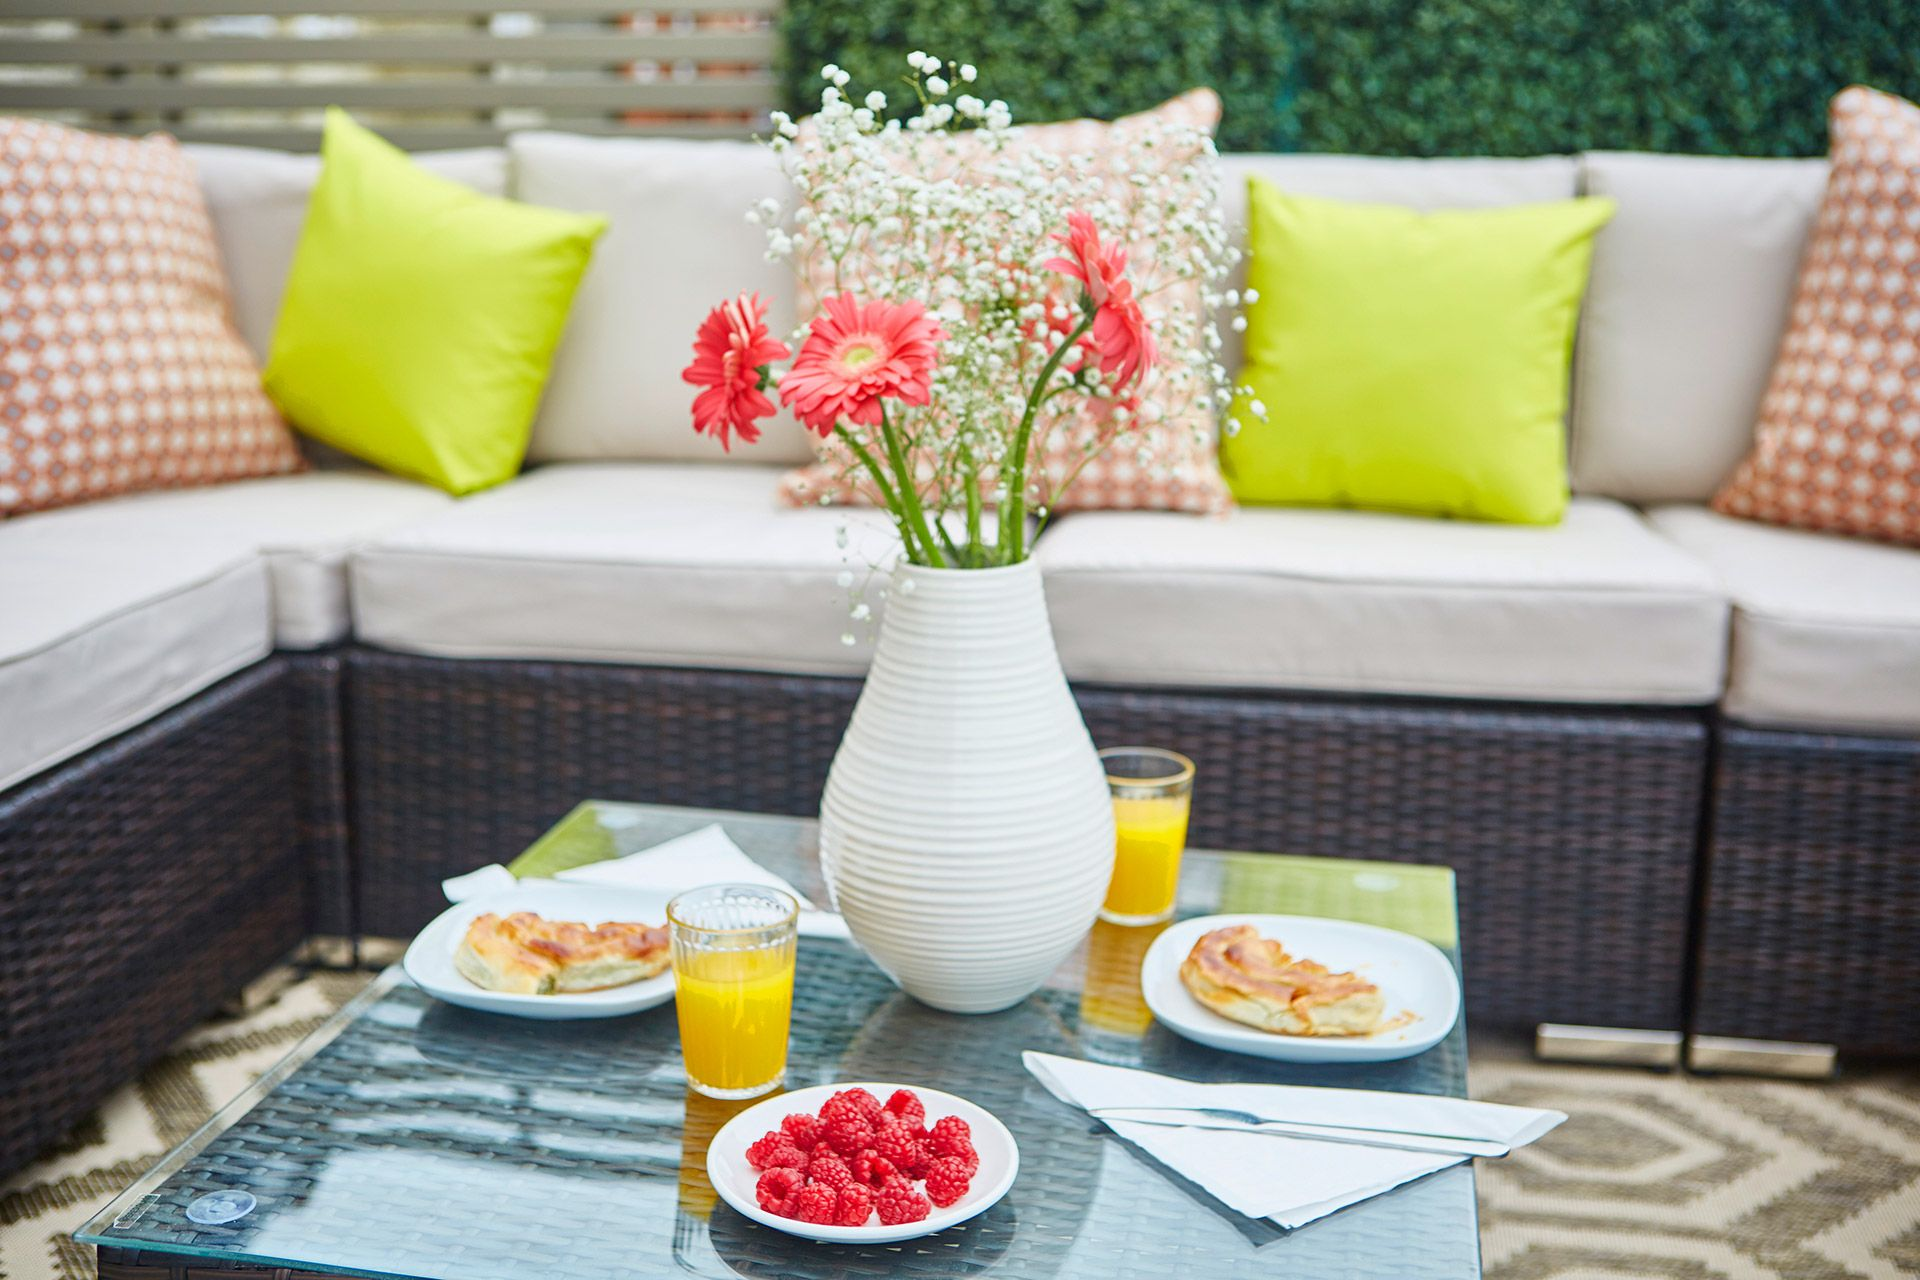 Breakfast al fresco on the rooftop terrace of the Danebury vacation rental offered by London Perfect